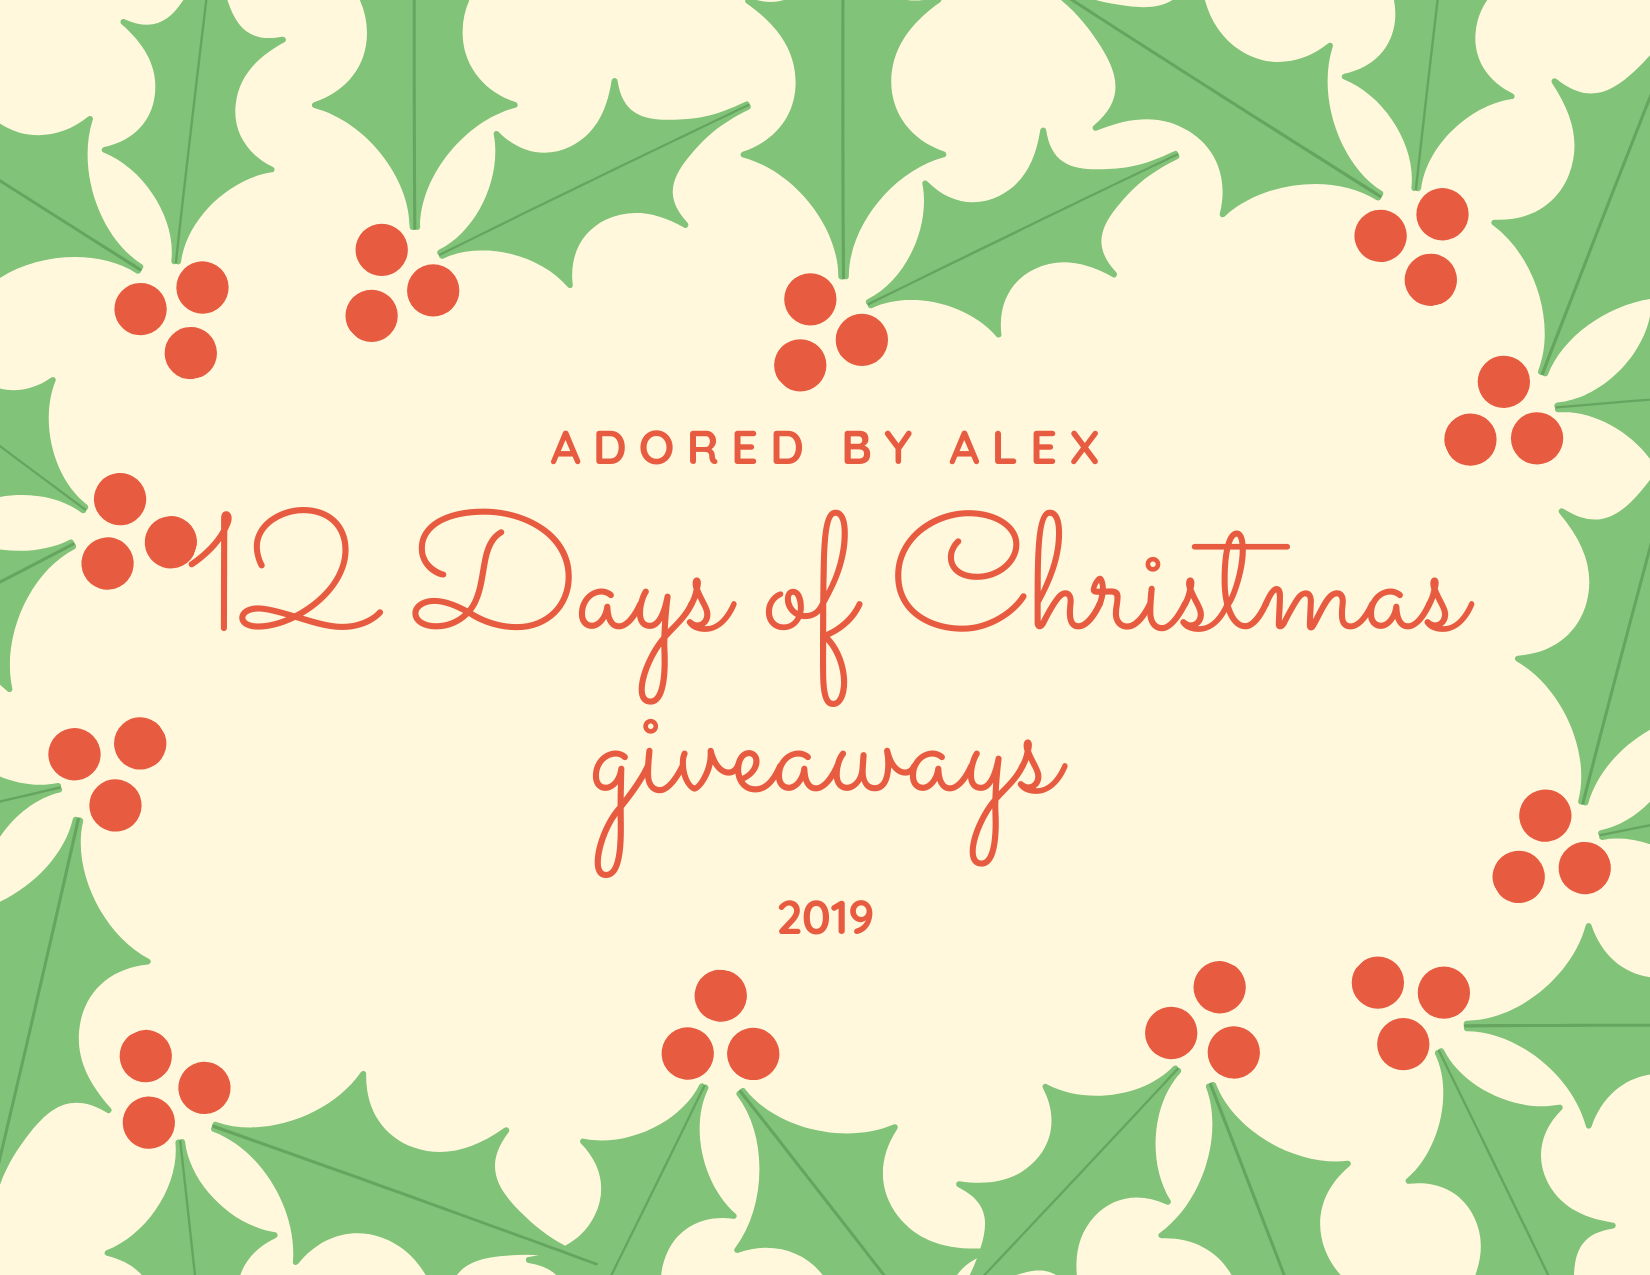 12 Days of Christmas Giveaways 2019 | Adored by Alex